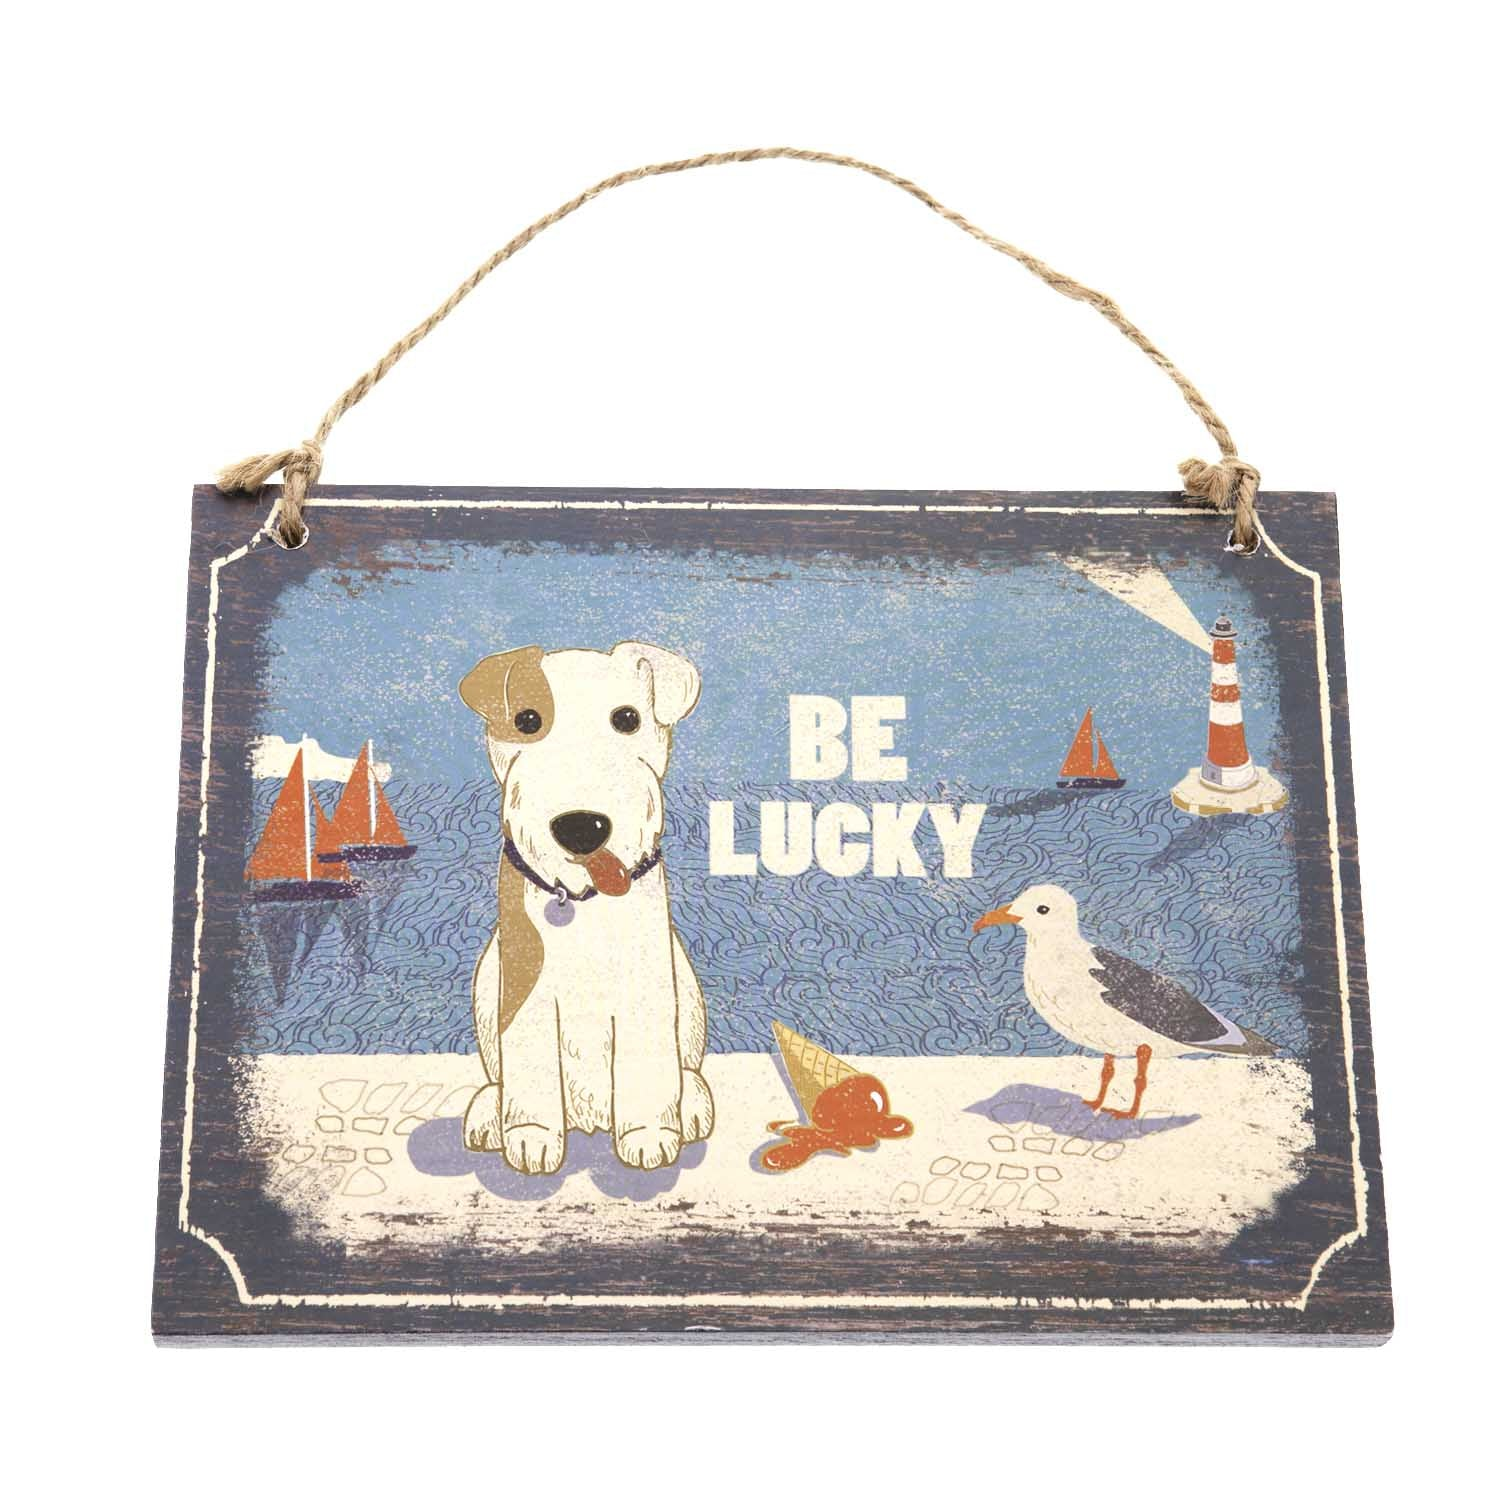 Dog Lover Gifts available at Dog Krazy Gifts – Jill White Rocket68 Ahoy Hanging Wooden Sign available at www.dogkrazygifts.co.uk